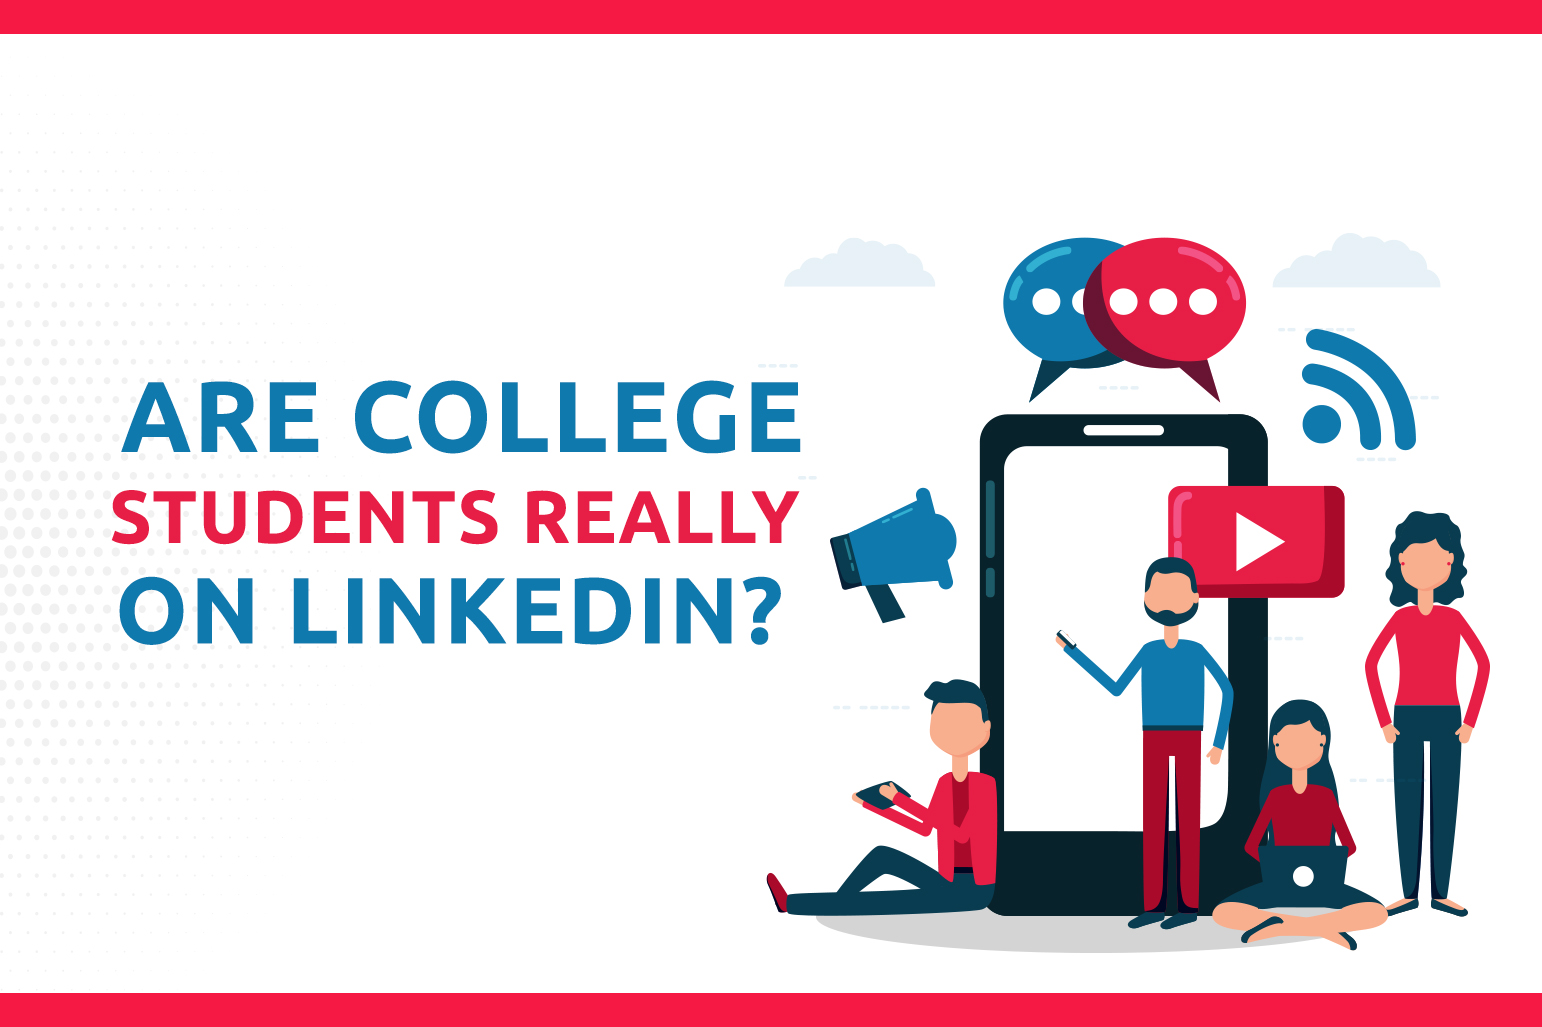 Are College Students Really On LinkedIn?